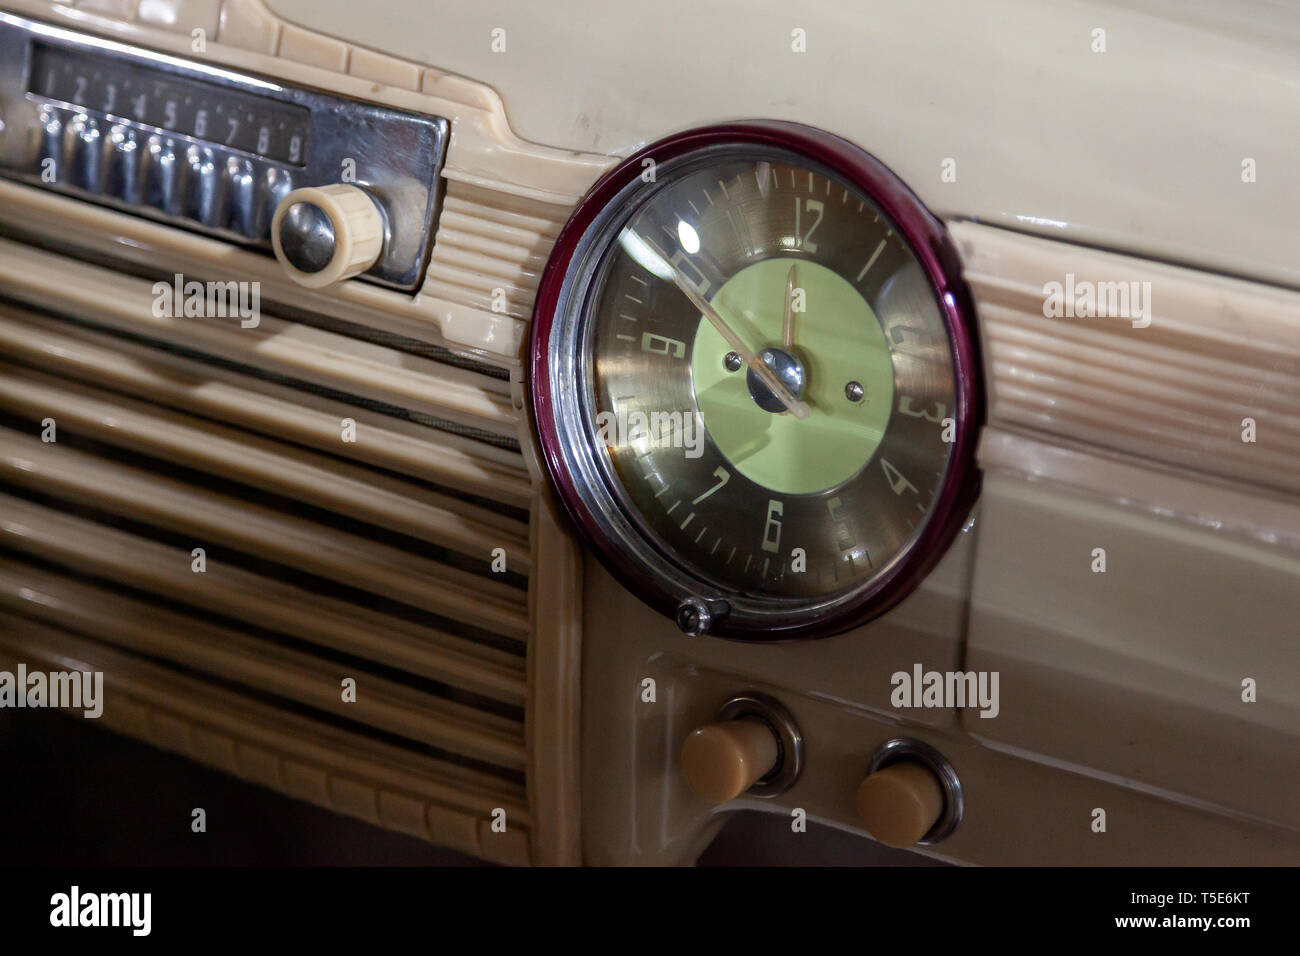 Vintage retro car dashboard with analog clock and audio radio system with buttons, handmade with wood and chrome for restoration - Stock Image